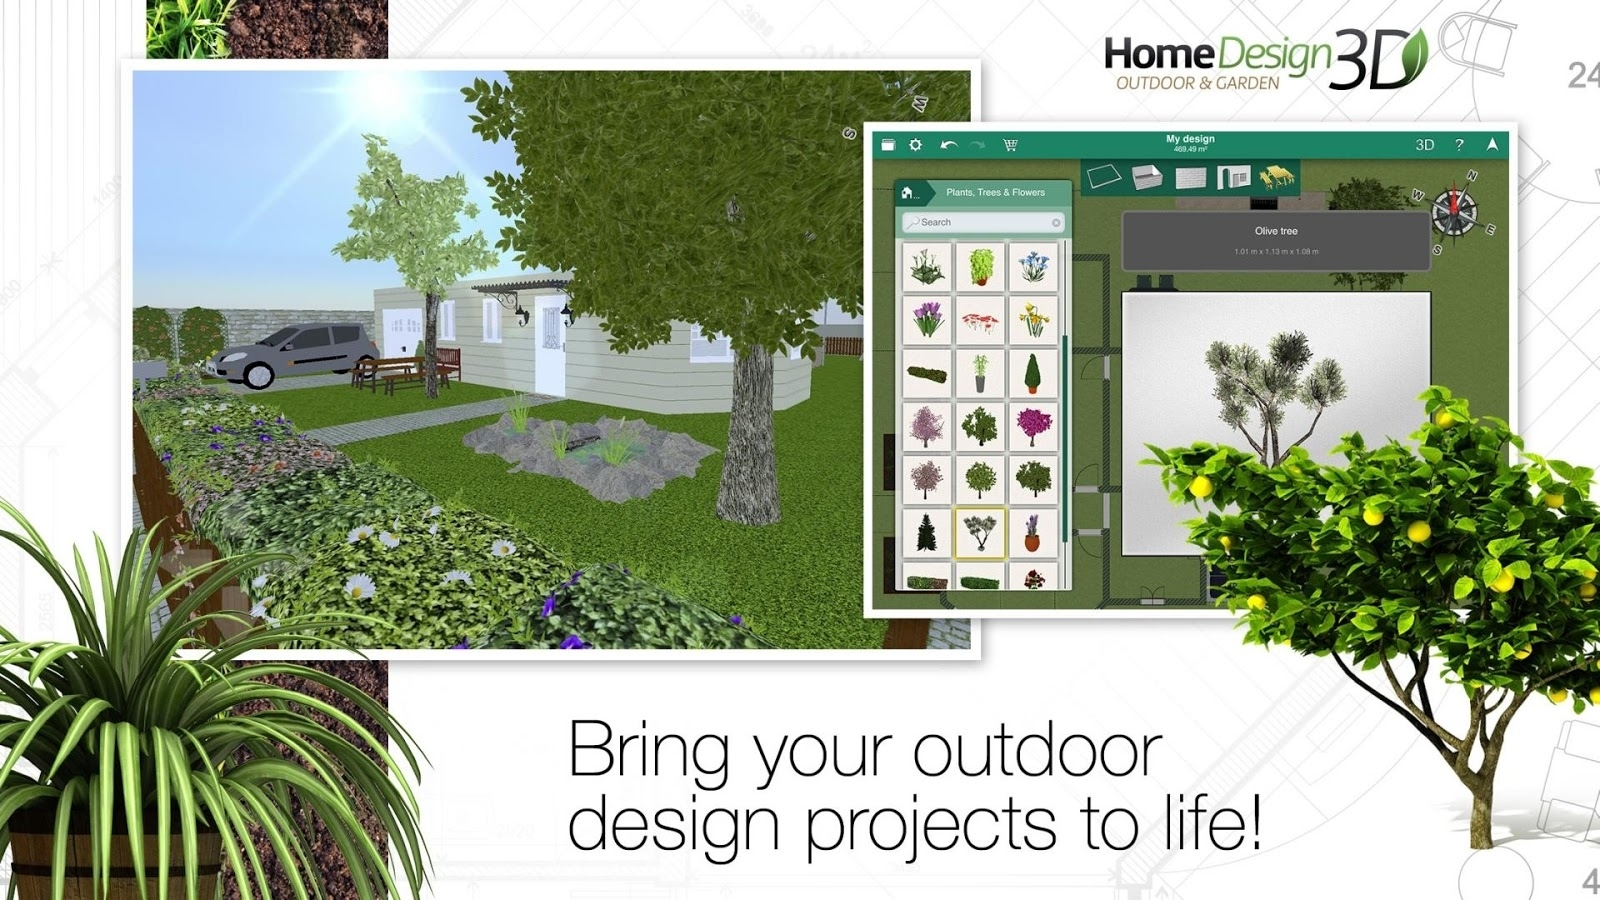 Home Design 3D Outdoor/garden Slides Into The Play Store For All inside Garden And House Design Software